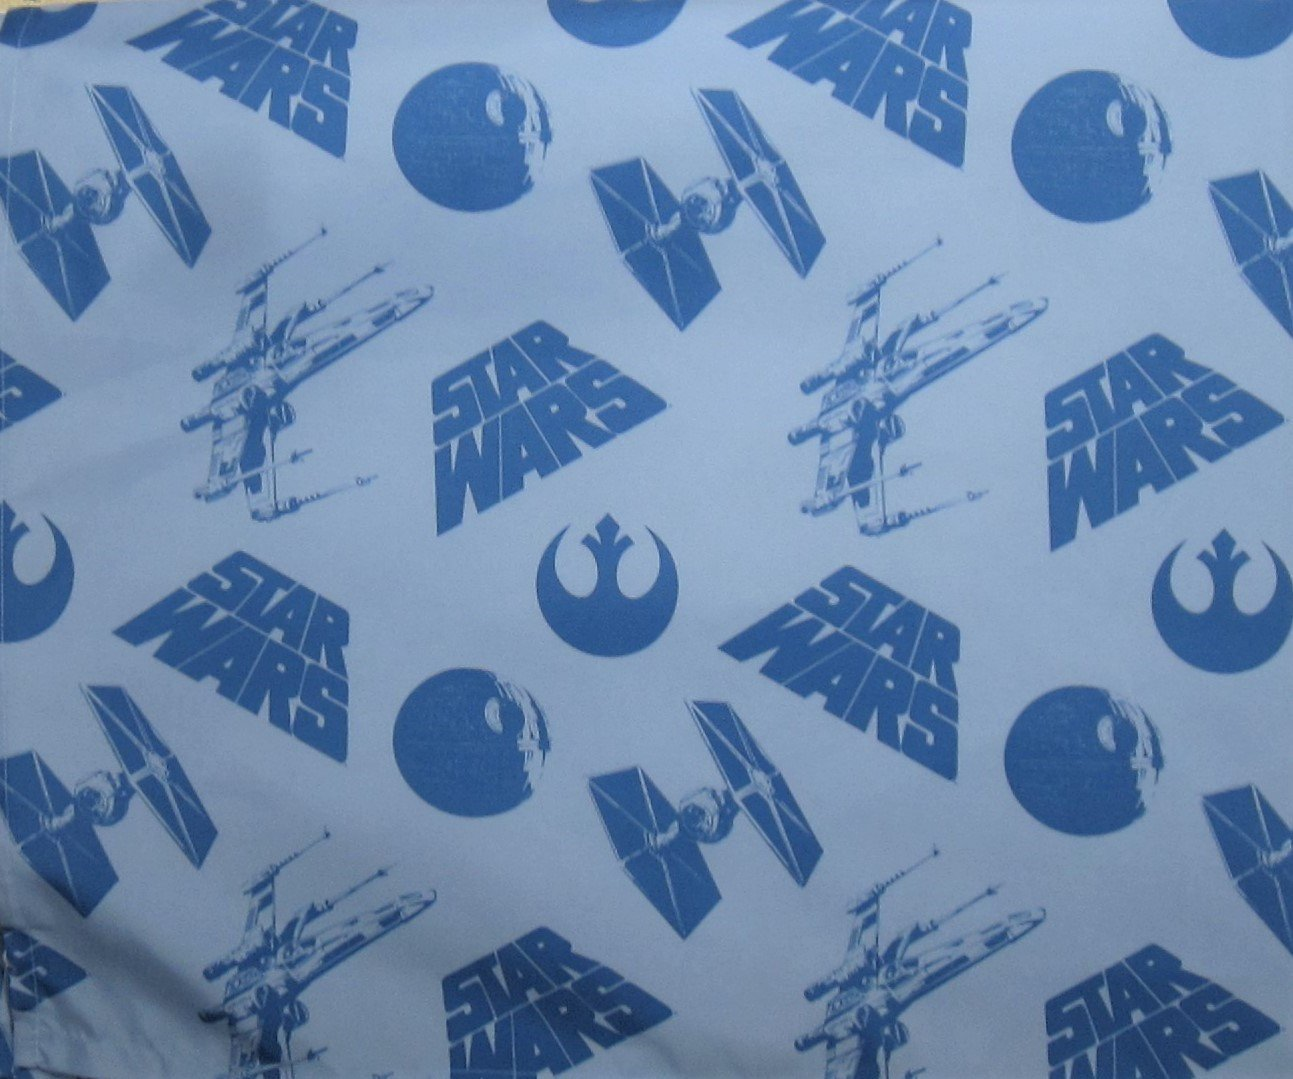 Star Wars Space Logo 100% Polyester (FLAT SHEET ONLY) Size TWIN Boys Girls Kids Bedding by Jay Franco